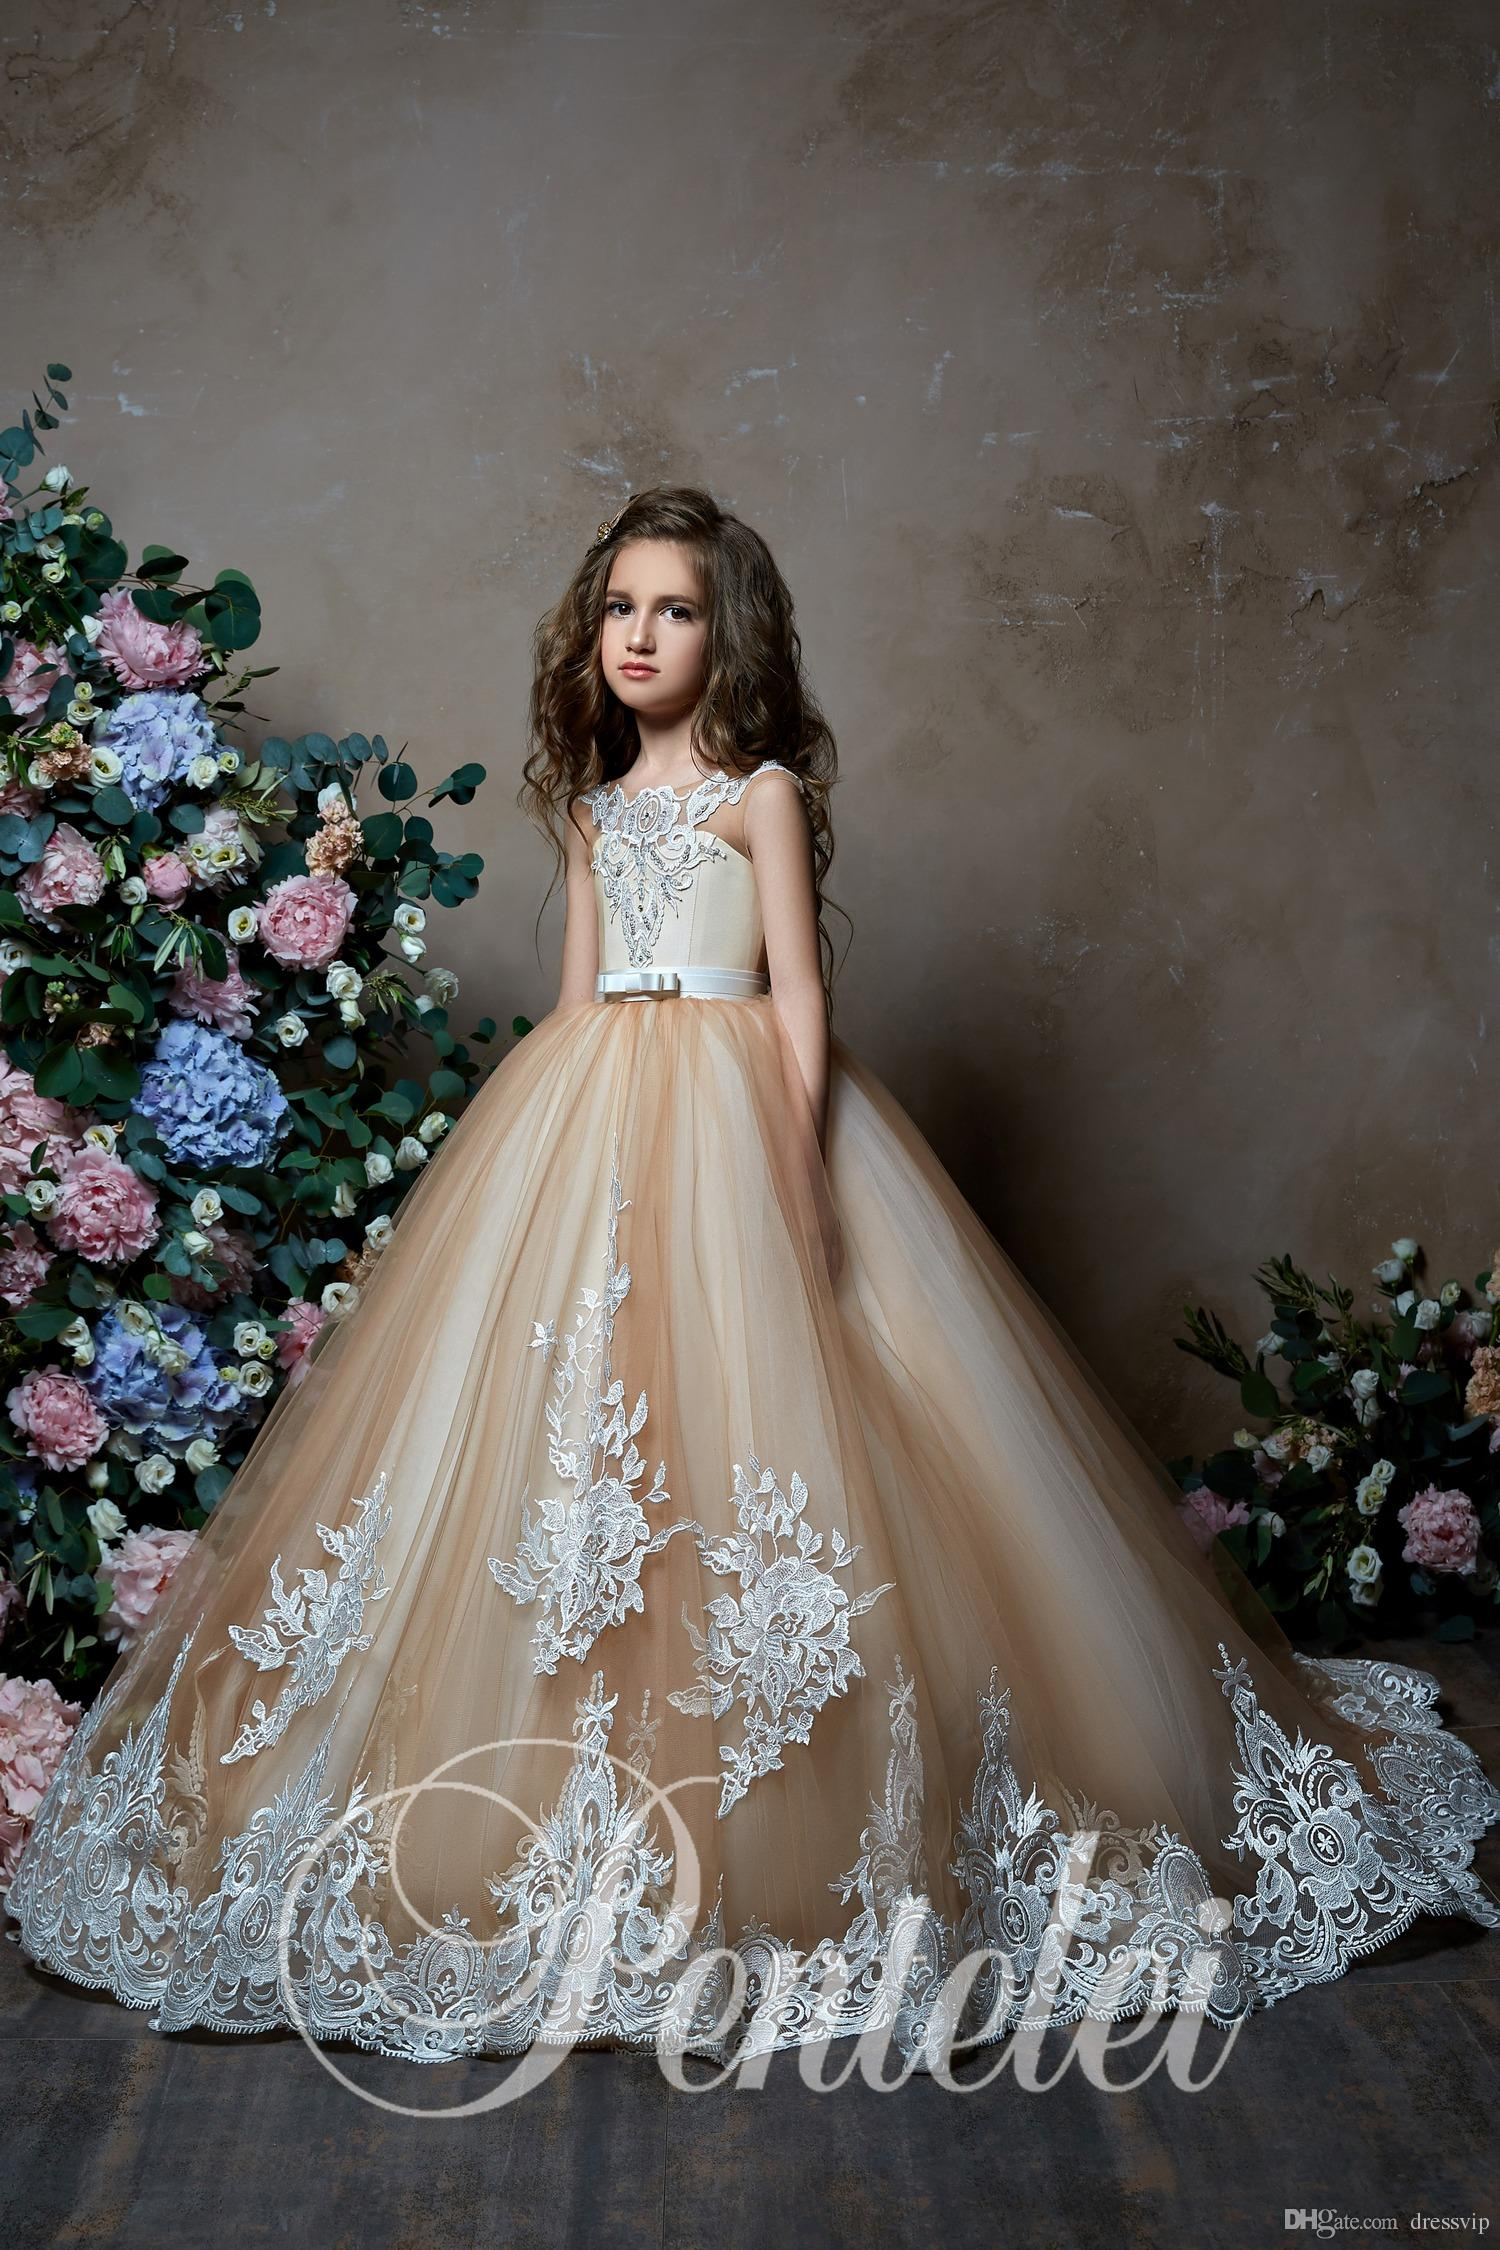 c623902dc2b Pentelei 2019 Champagne Flower Girl Dresses For Weddings Jewel Neck Lace  Little Kids Baby Gowns First Communion Dress Girls Pageant Gowns Infant  Dress Lilac ...